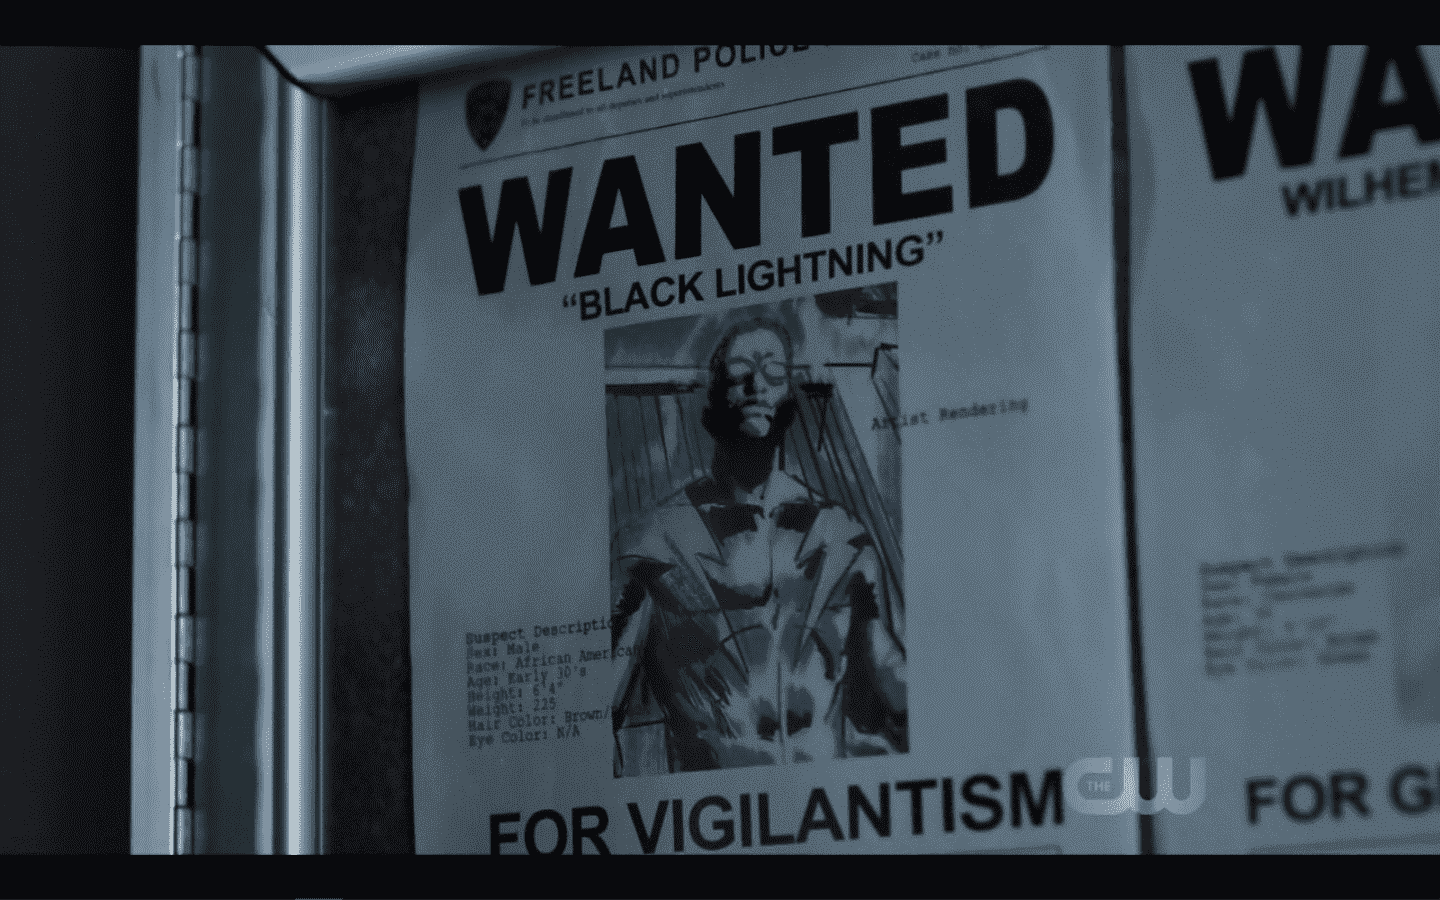 A Black Lightning Wanted Poster.